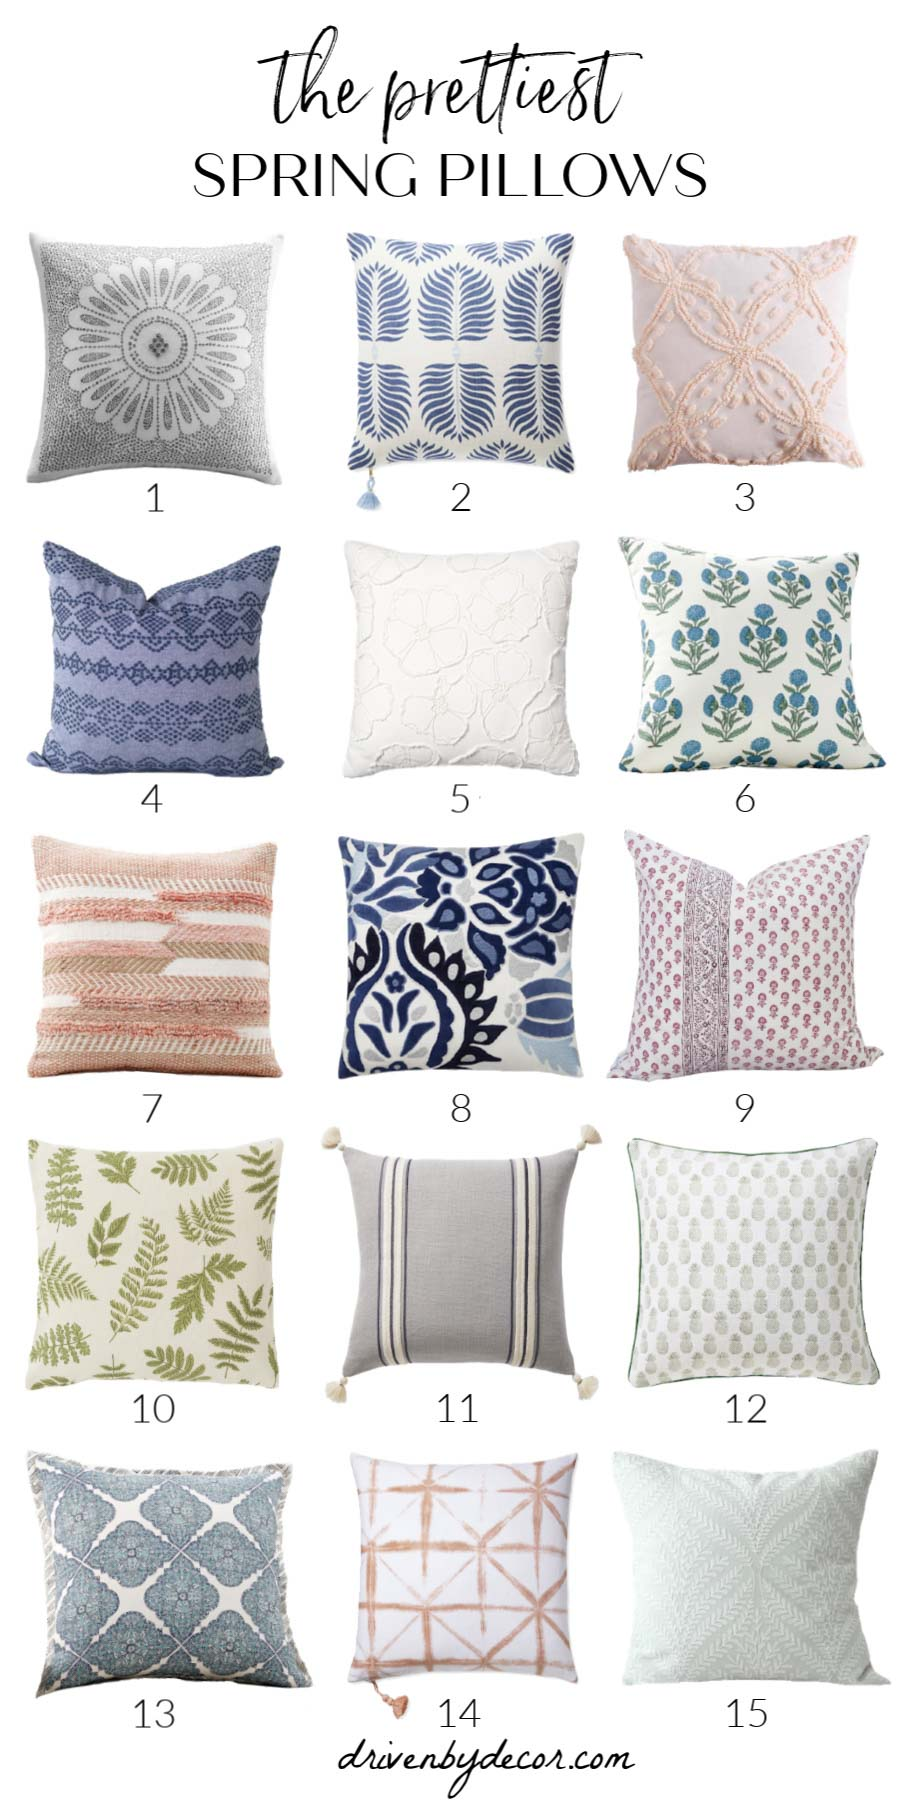 The prettiest spring pillows & pillow covers! Sources to each are included in post!